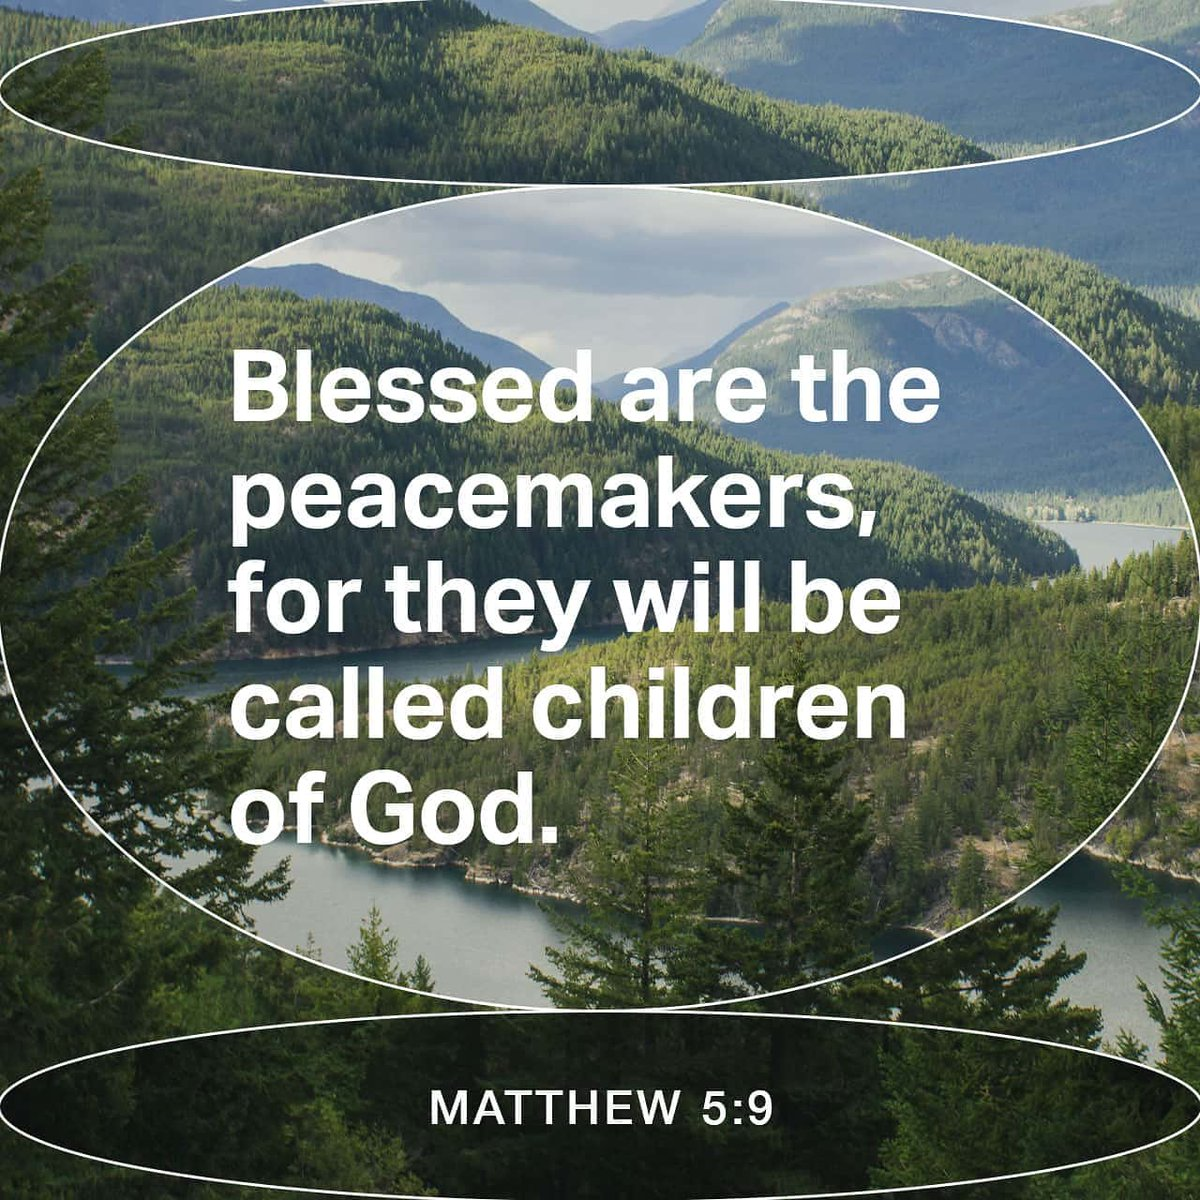 Blessed are the peacemakers, For they shall be called sons of God. Matthew 5:9 NKJV  #bible #quotes #verseoftheday #HonestyMissions #honestymusic #honestyentertainment #goodnews #loveofGod #Rhema in